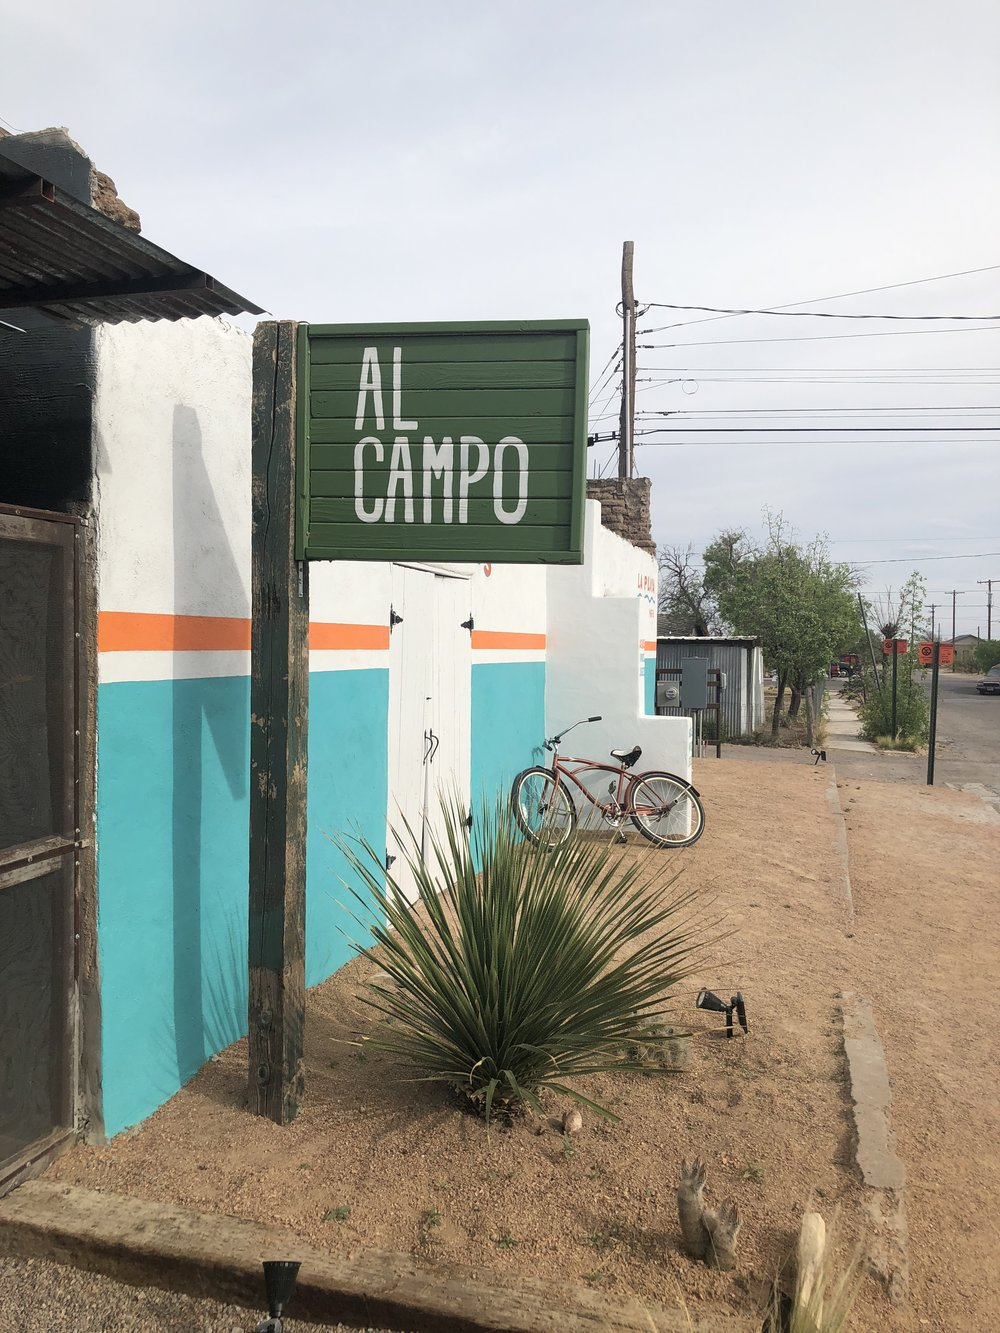 Al Campo , one of our favorite places in Marfa. They have a wine patio, restaurant and event space, all semi al fresco style.